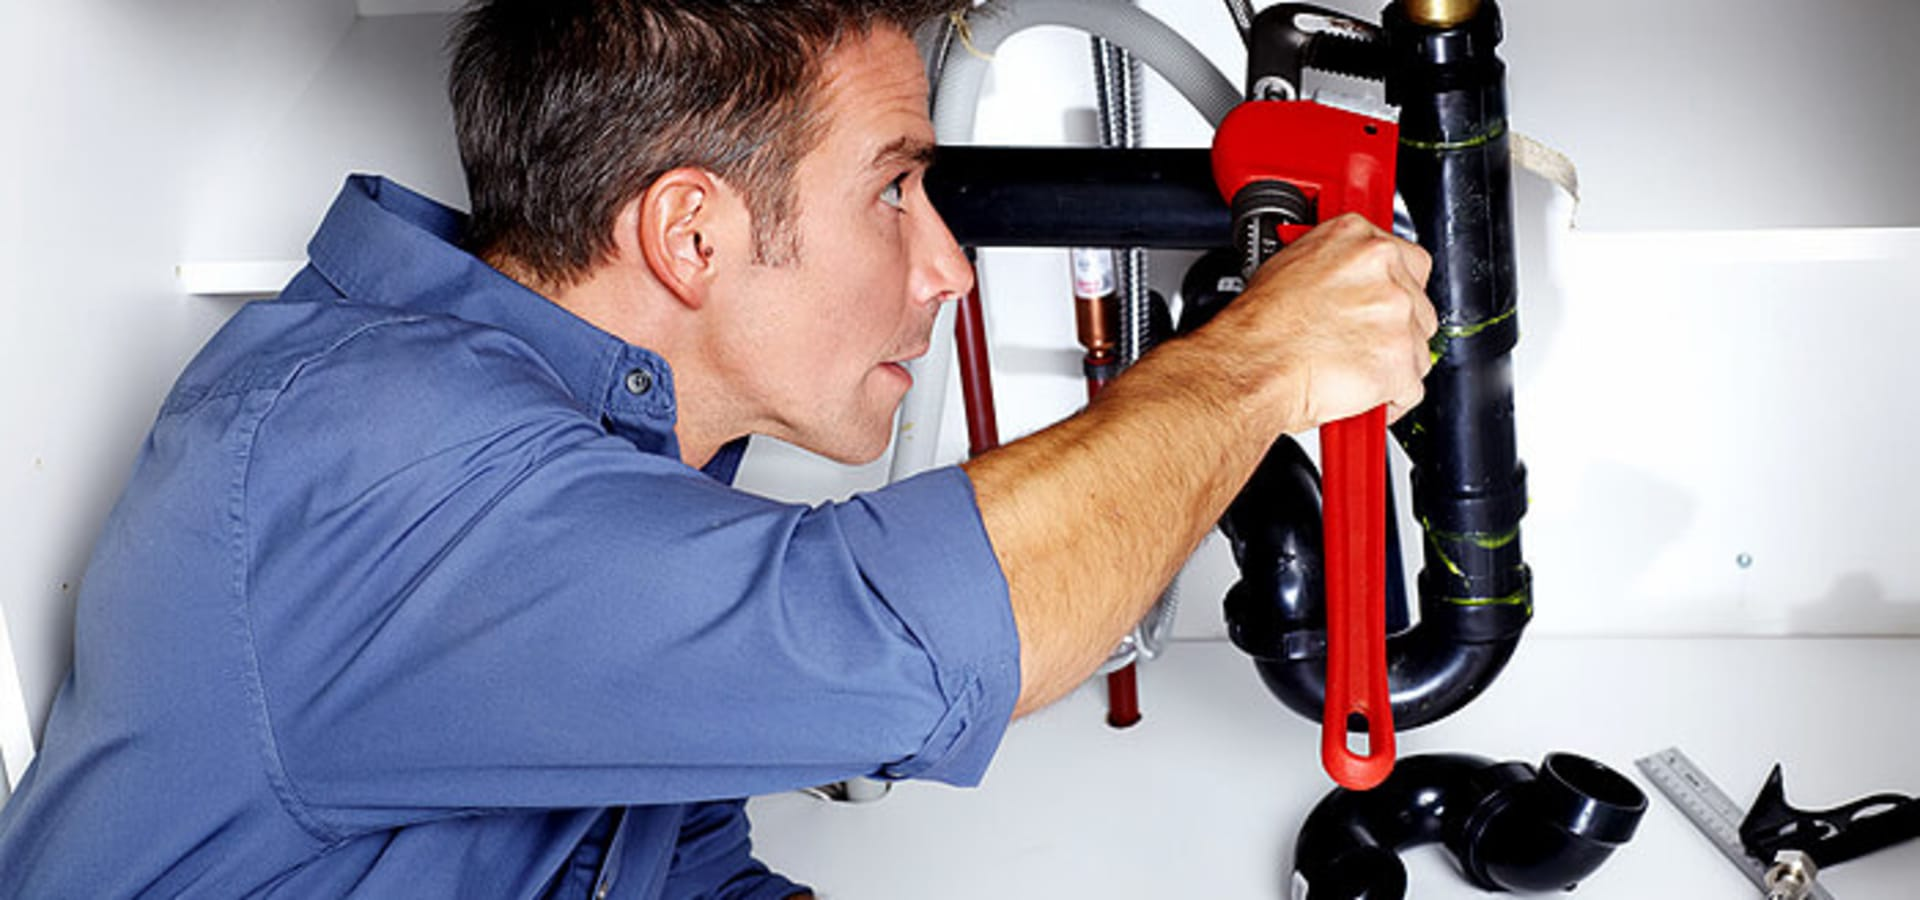 The Durban Pro Plumber Group